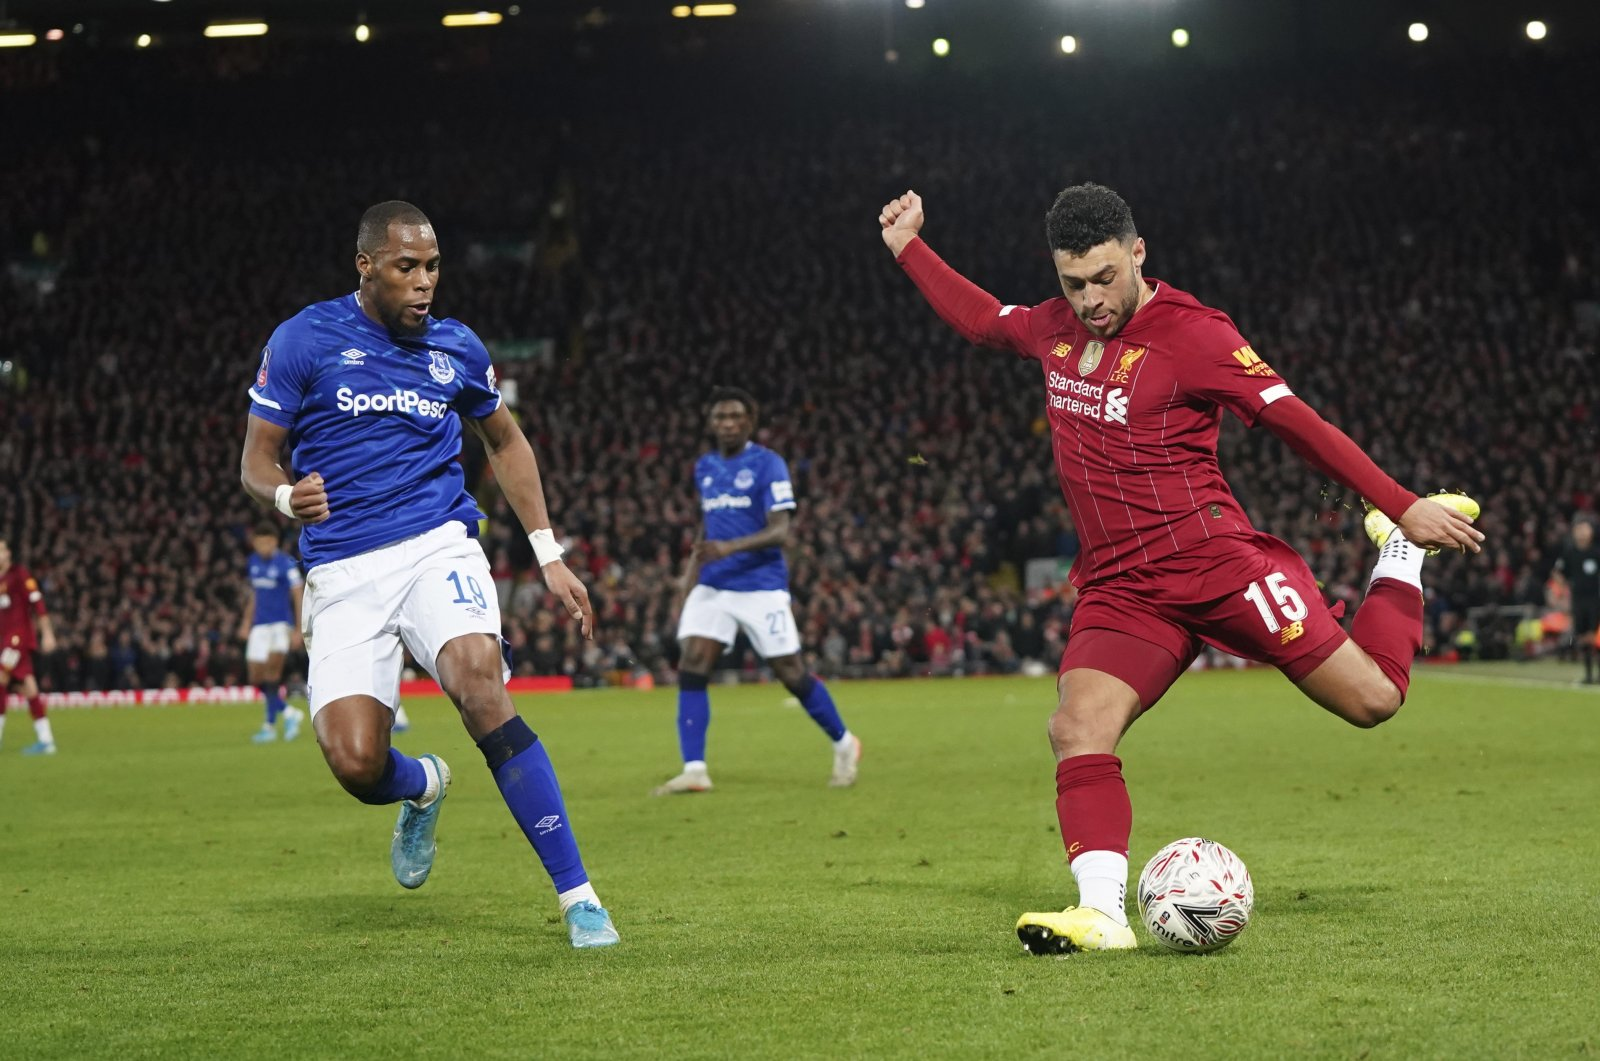 Liverpool's Alex Oxlade-Chamberlain (R) kicks the ball as Everton's Djibril Sidibe tries to stop him during an FA Cup match in Liverpool, England, Jan. 5, 2020. (AP Photo)